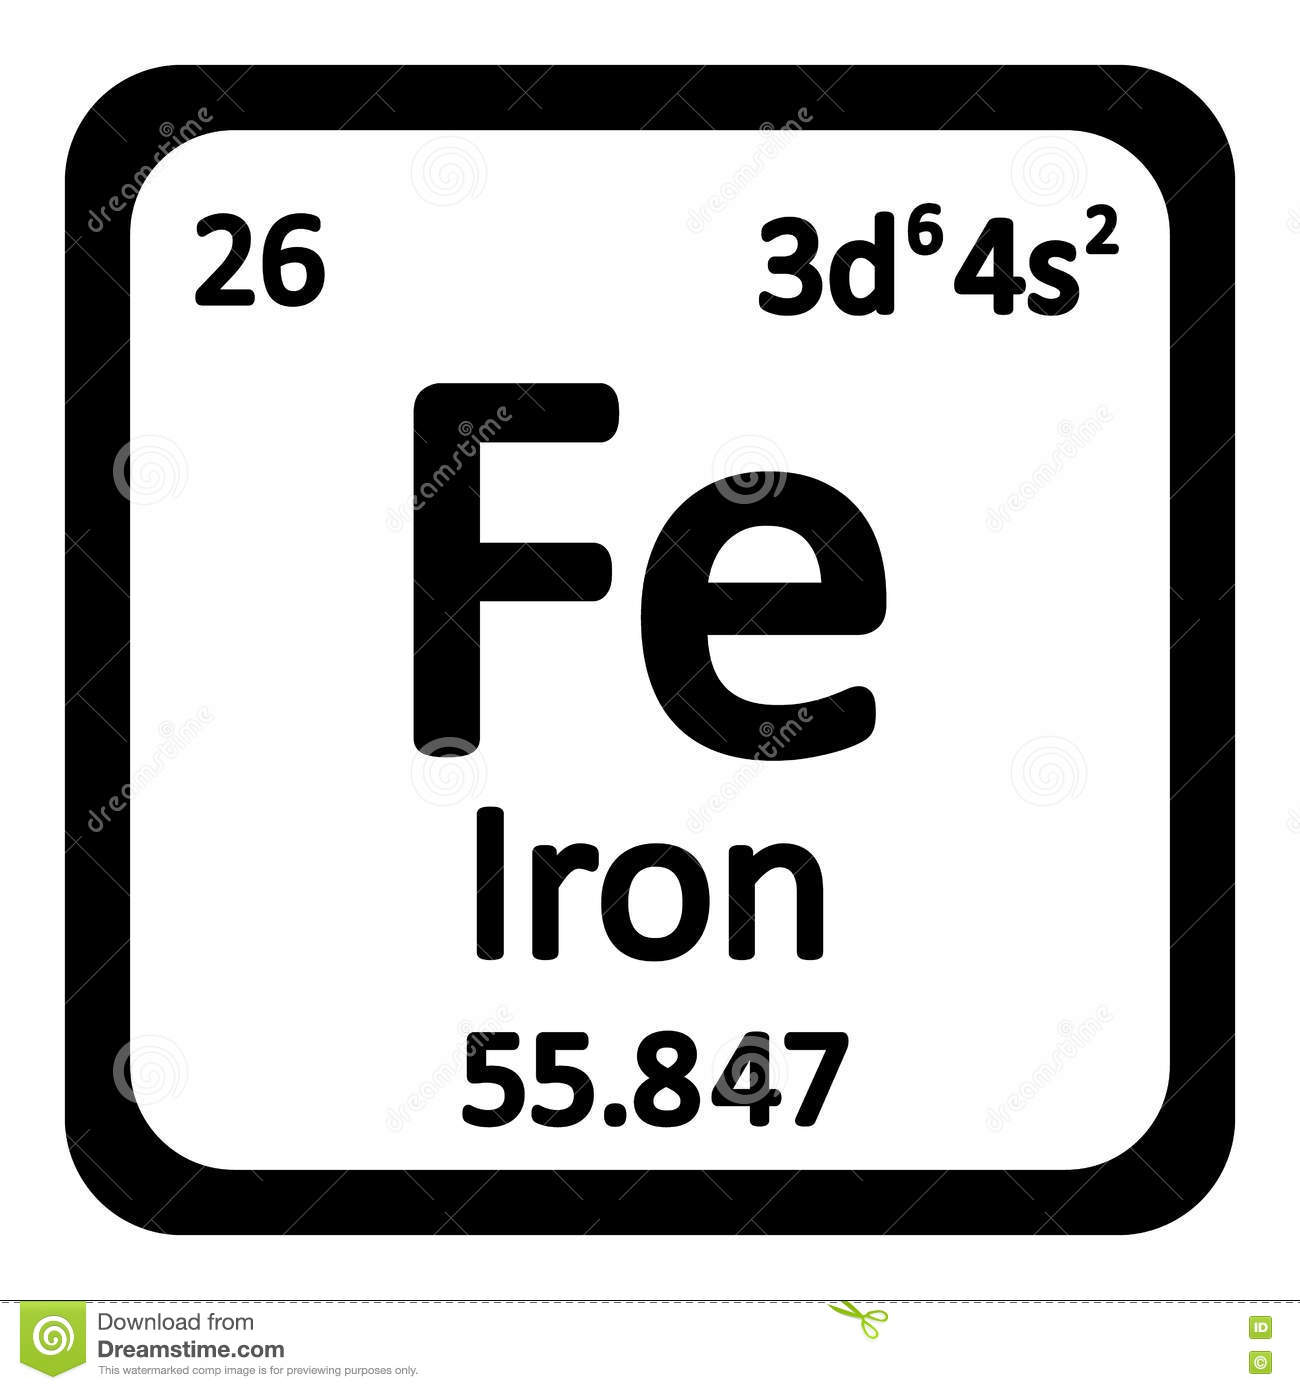 Periodic table element iron icon stock illustration image 78437391 periodic table element iron icon gamestrikefo Image collections